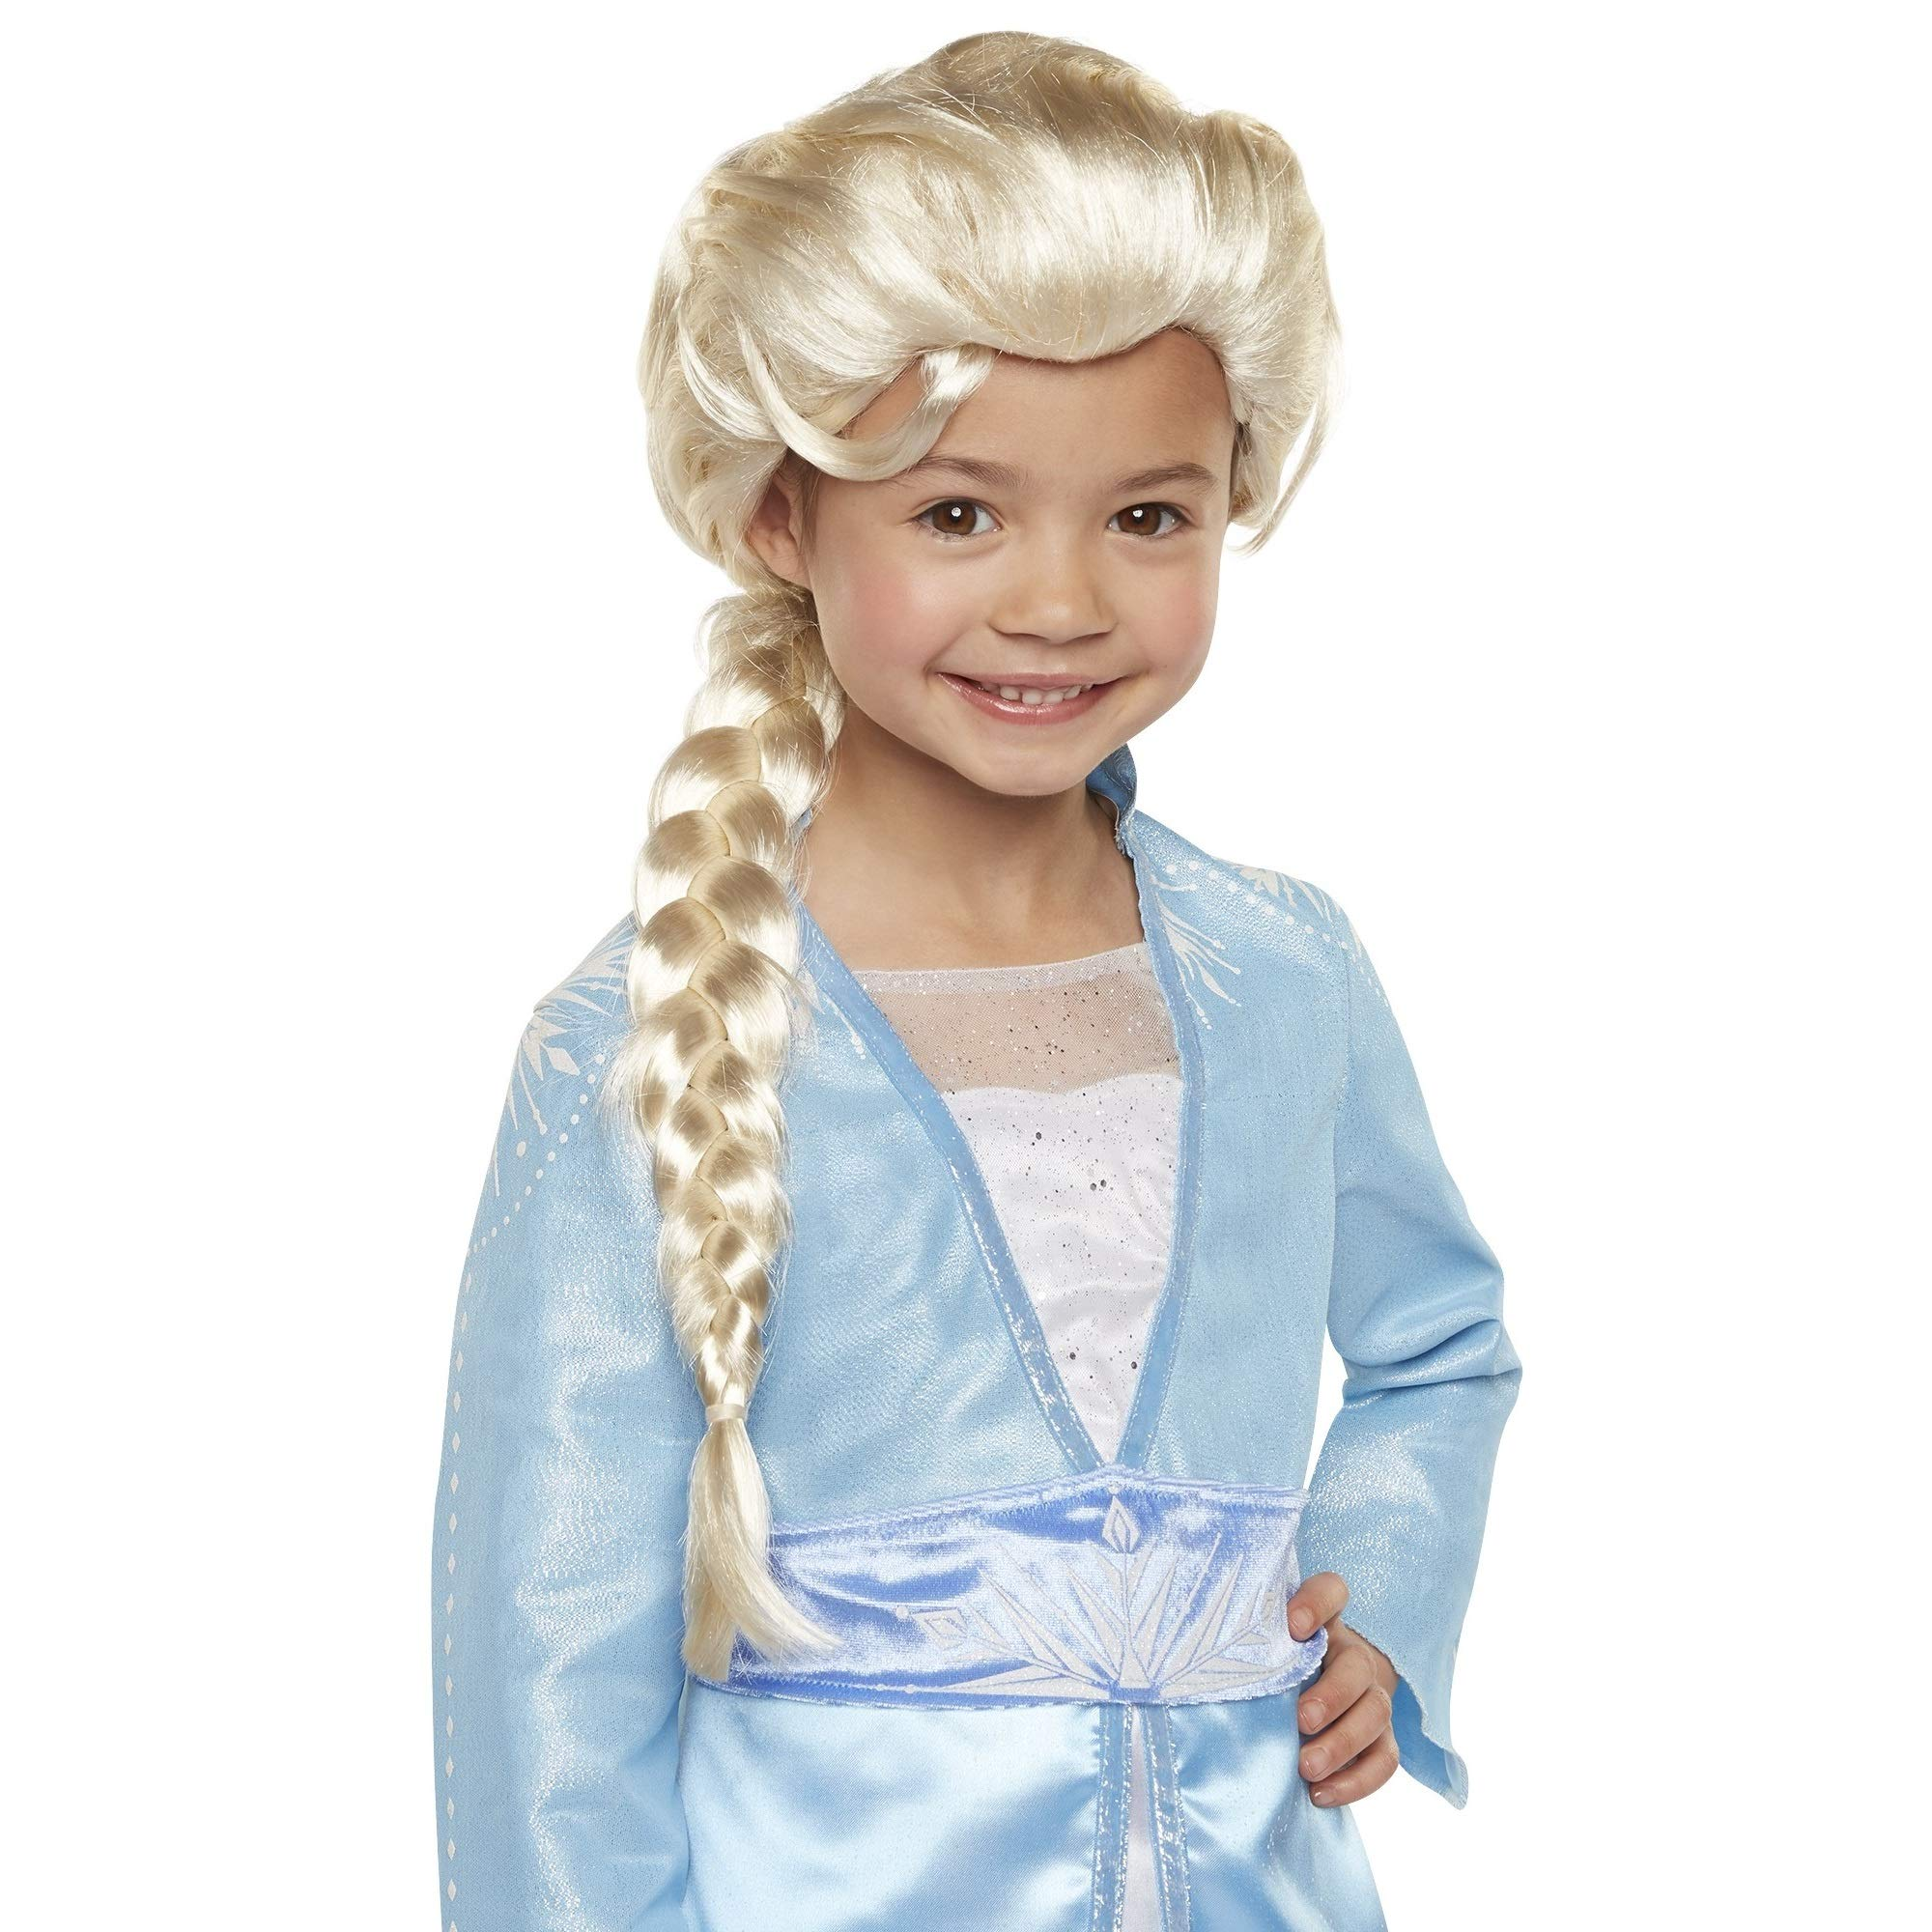 Disney Frozen 2 Elsa Wig, 20'' Long with Iconic Braid for Girls Costume, Dress Up or Halloween - For Ages 3+ by Frozen 2